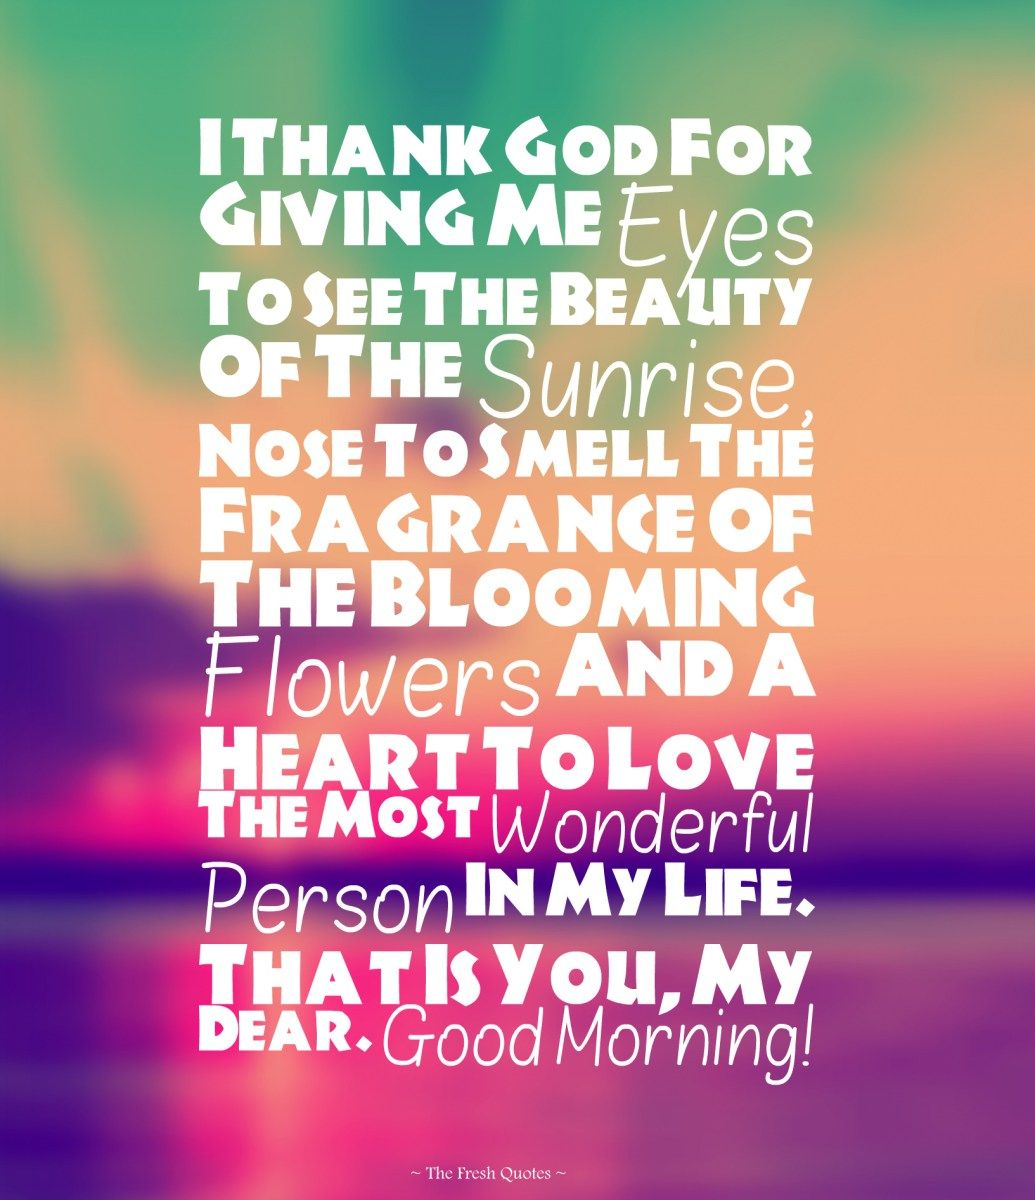 Cute Romantic Good Morning Wishes Images Sweet Pinterest